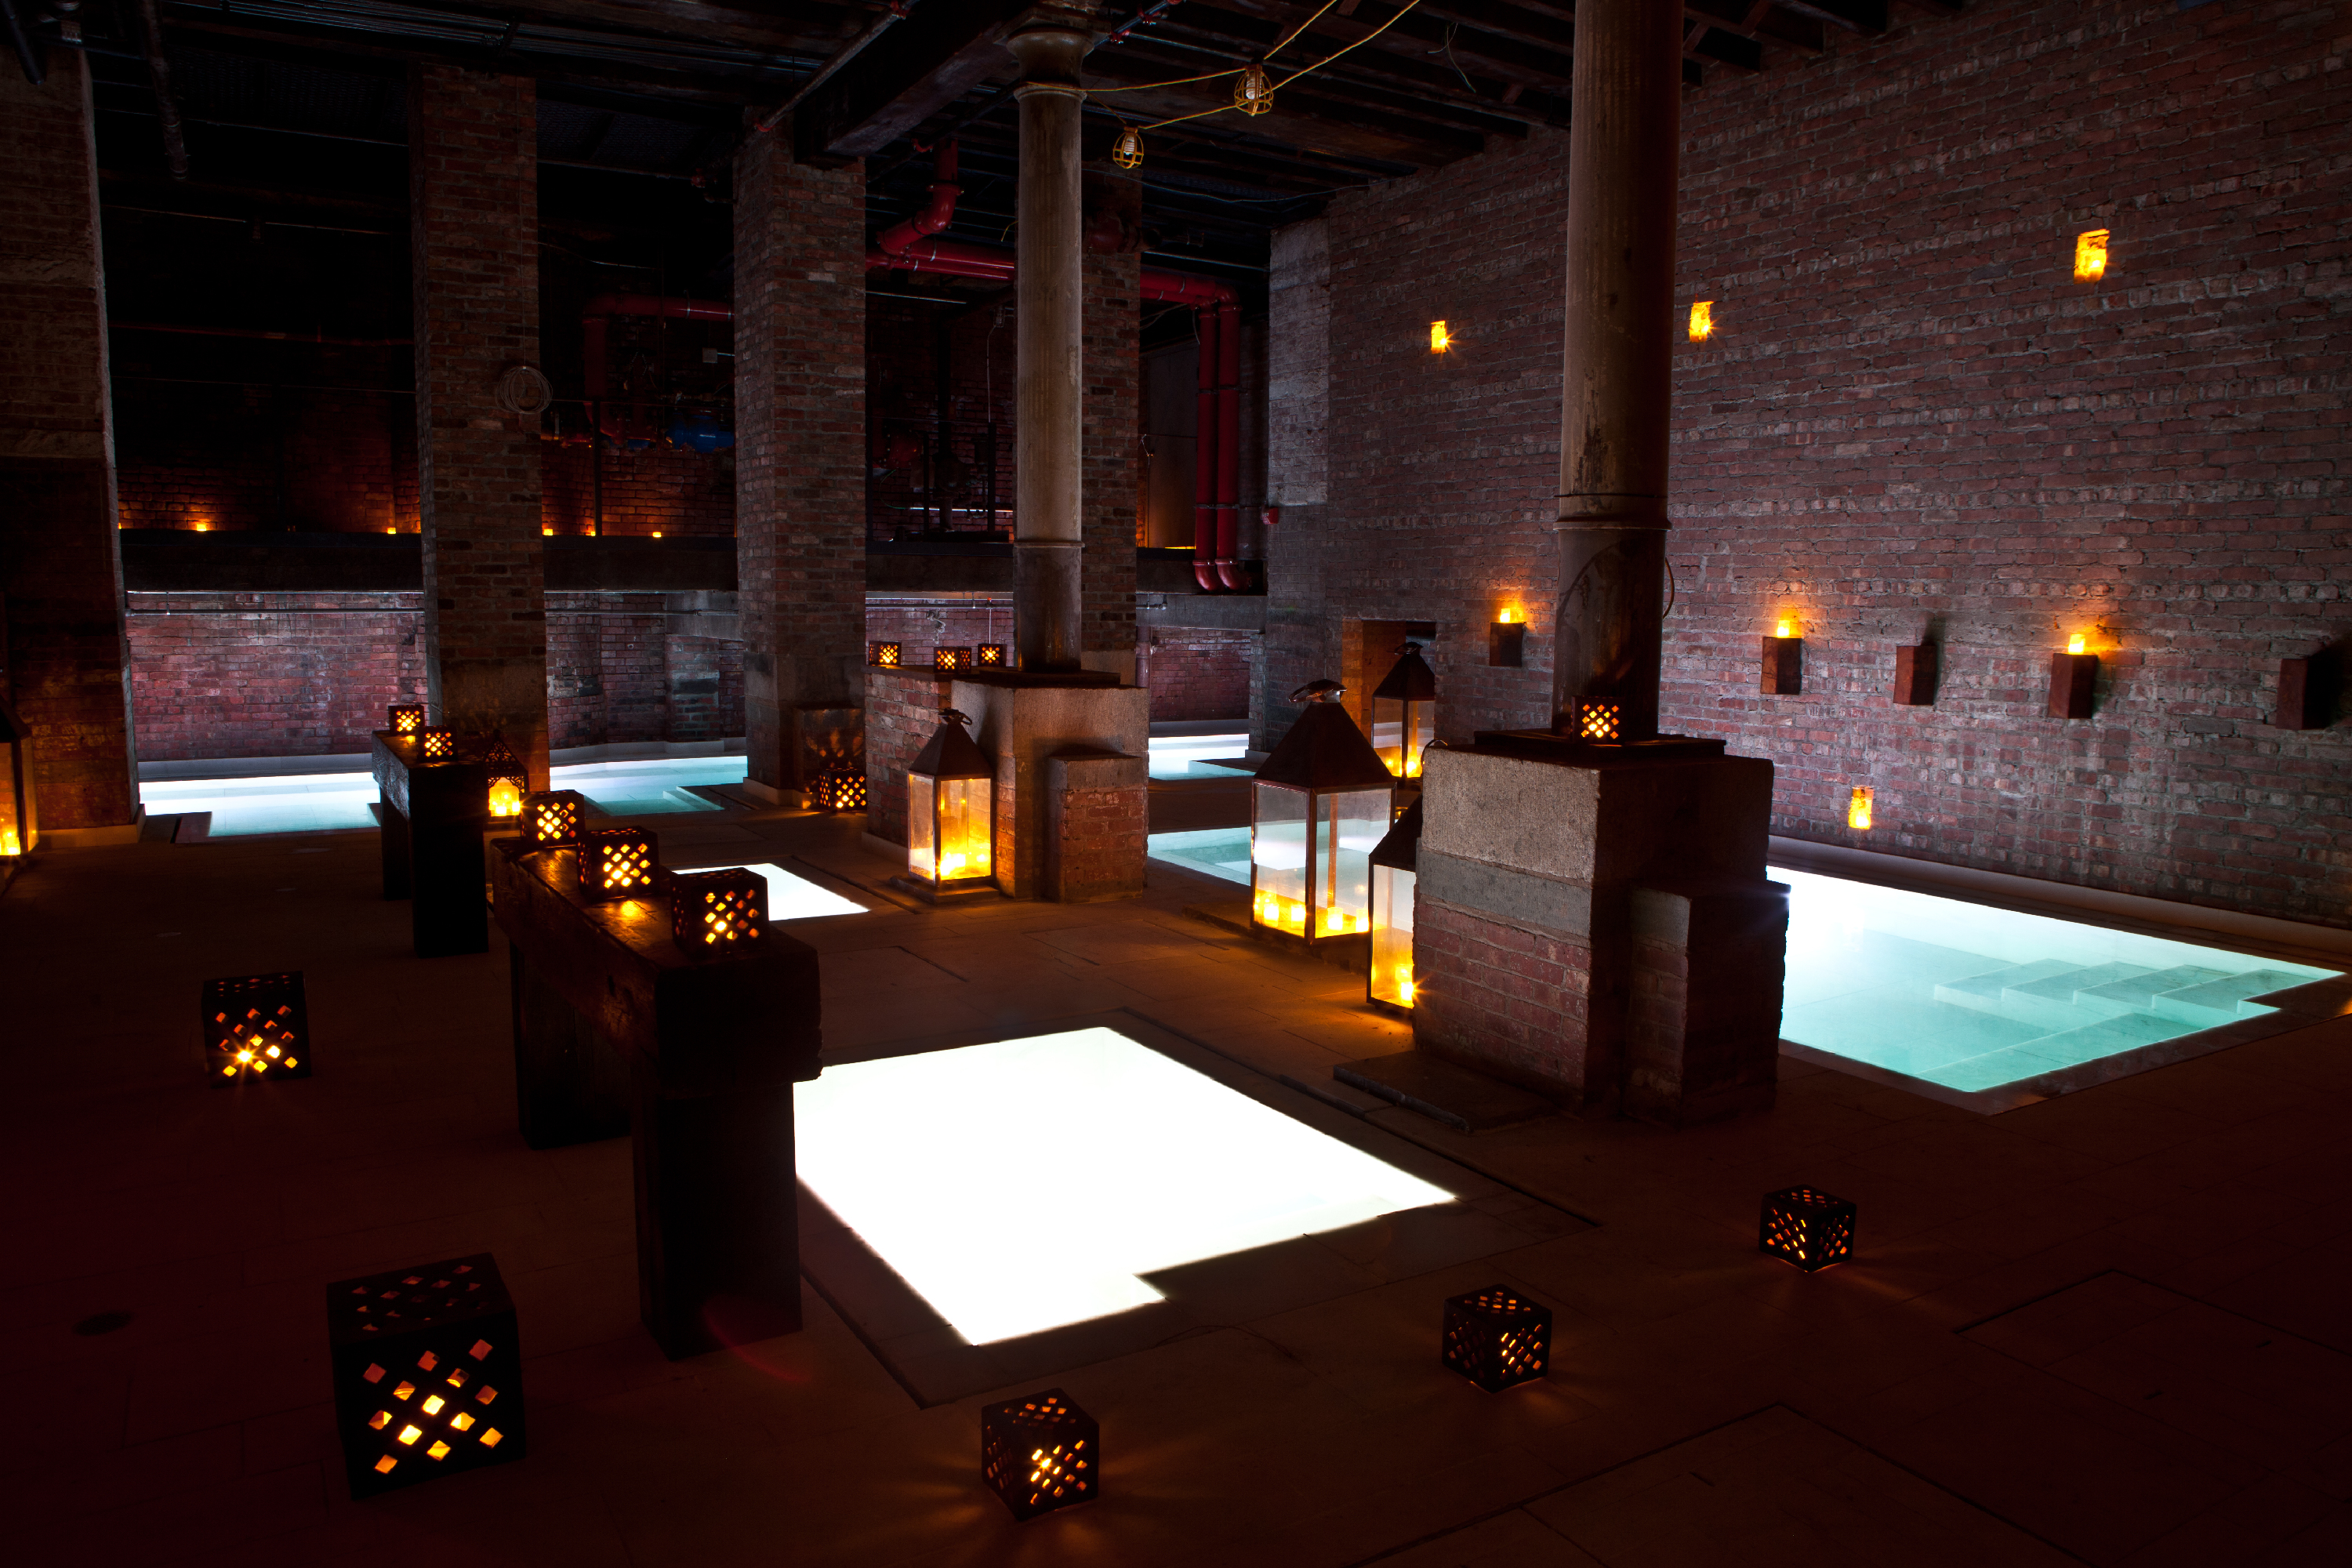 Aire Ancient Baths | Health and beauty in Tribeca, New York